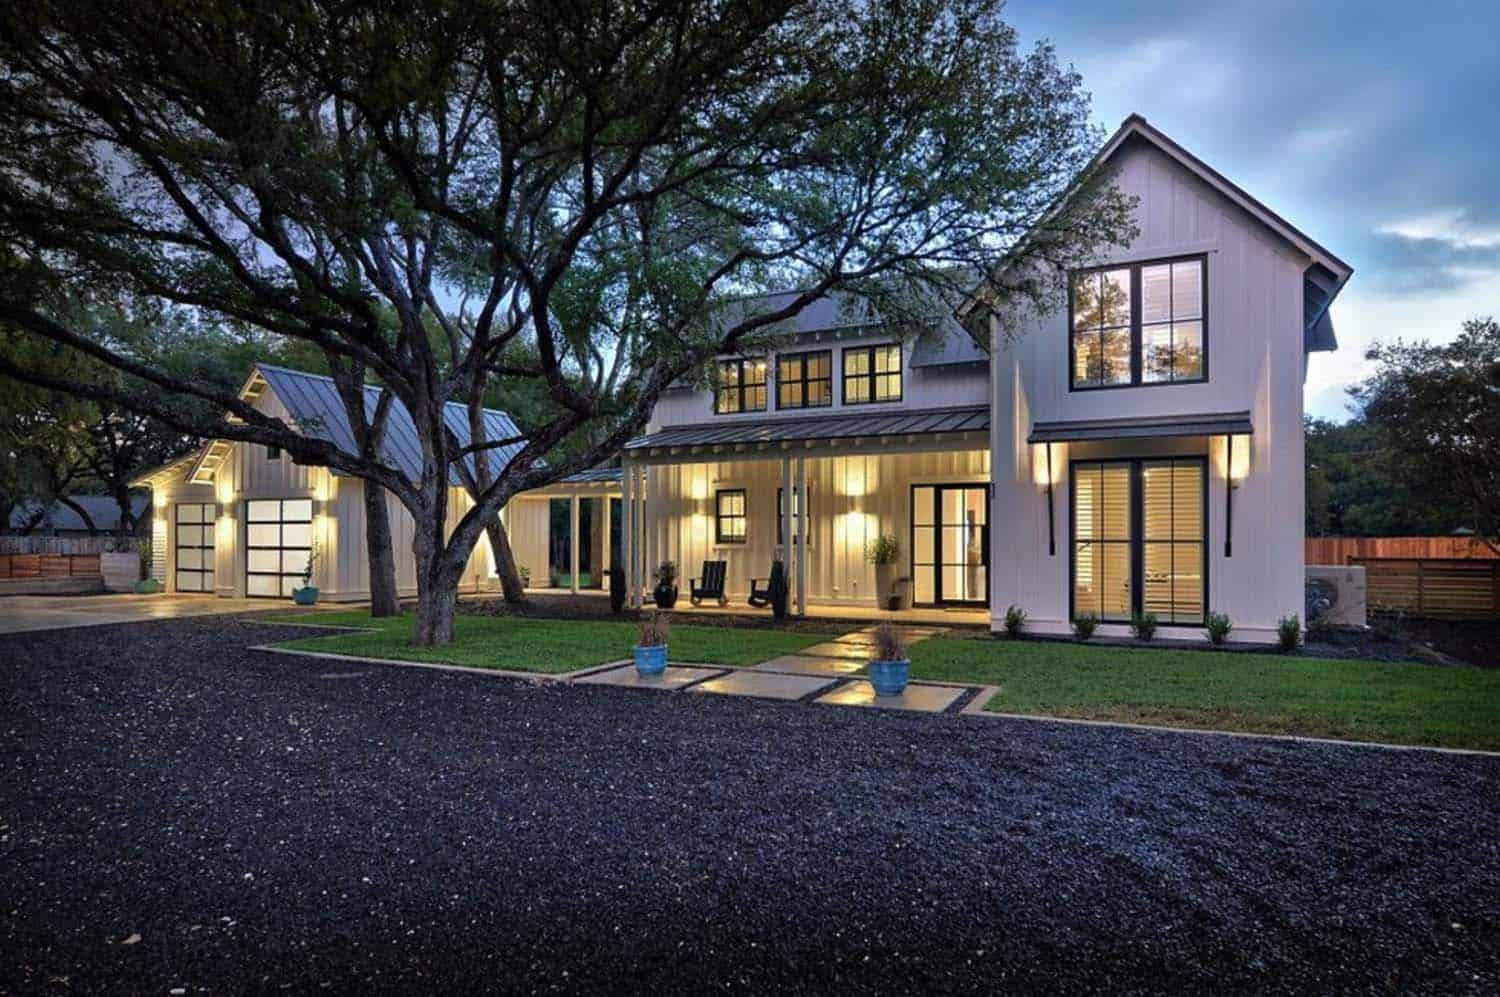 modernized texas farmhouse filled with eye catching details On texas farmhouse plans